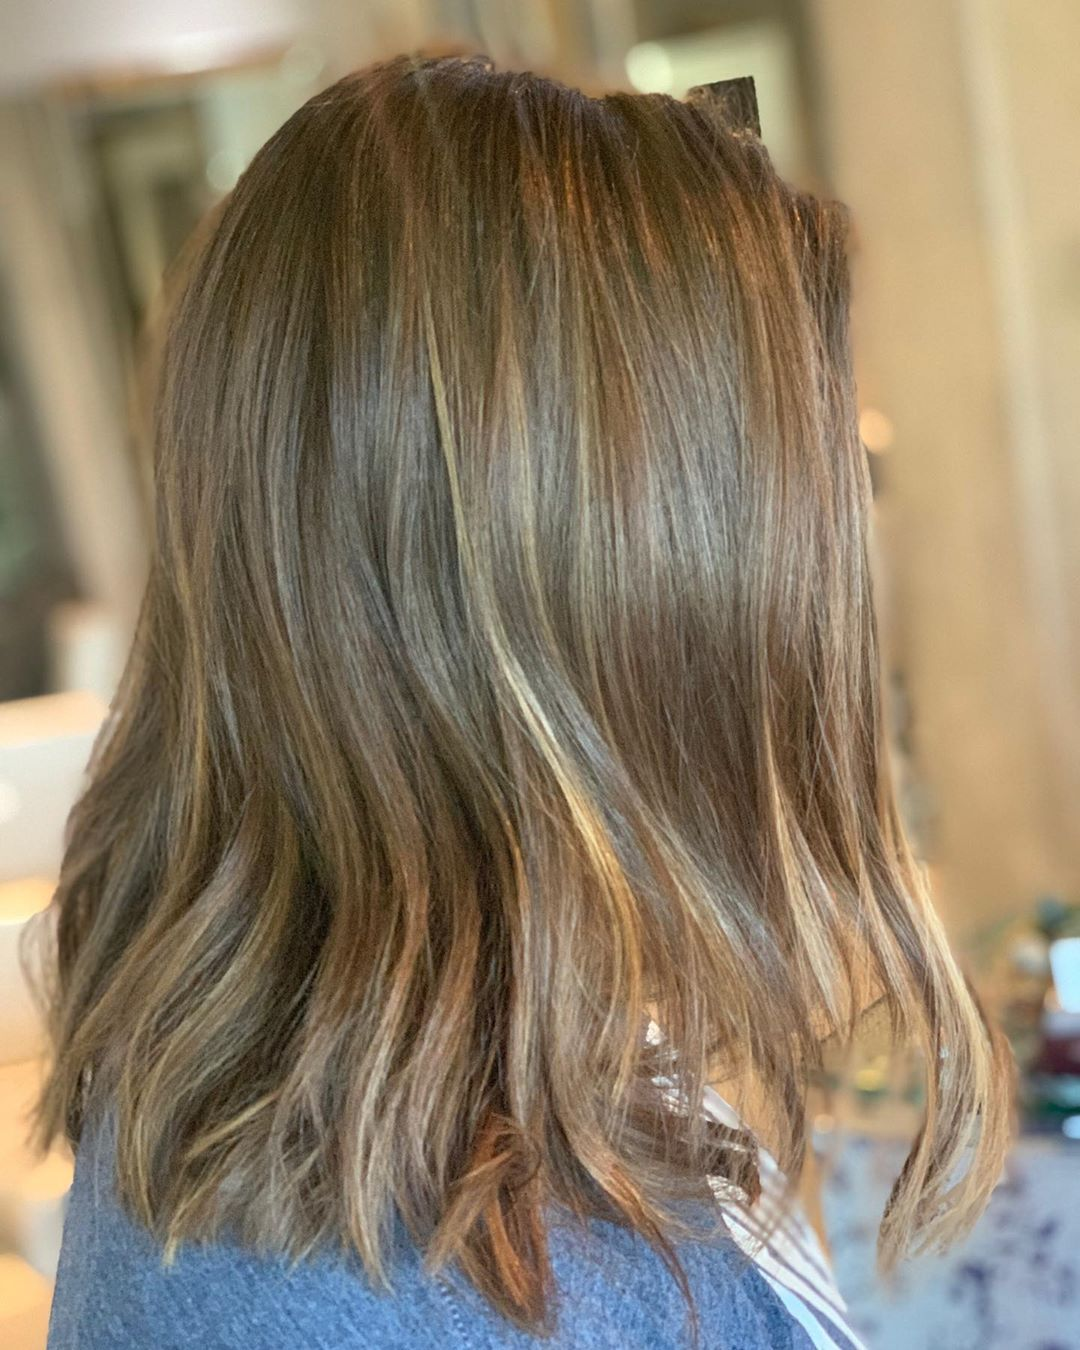 In This Pin We Share Different Hair Color Ideas For Brunettes Hair Color Blonde Natural Hair Hair Color For Morena Hair Color Crazy Hair Color For Morena Skin